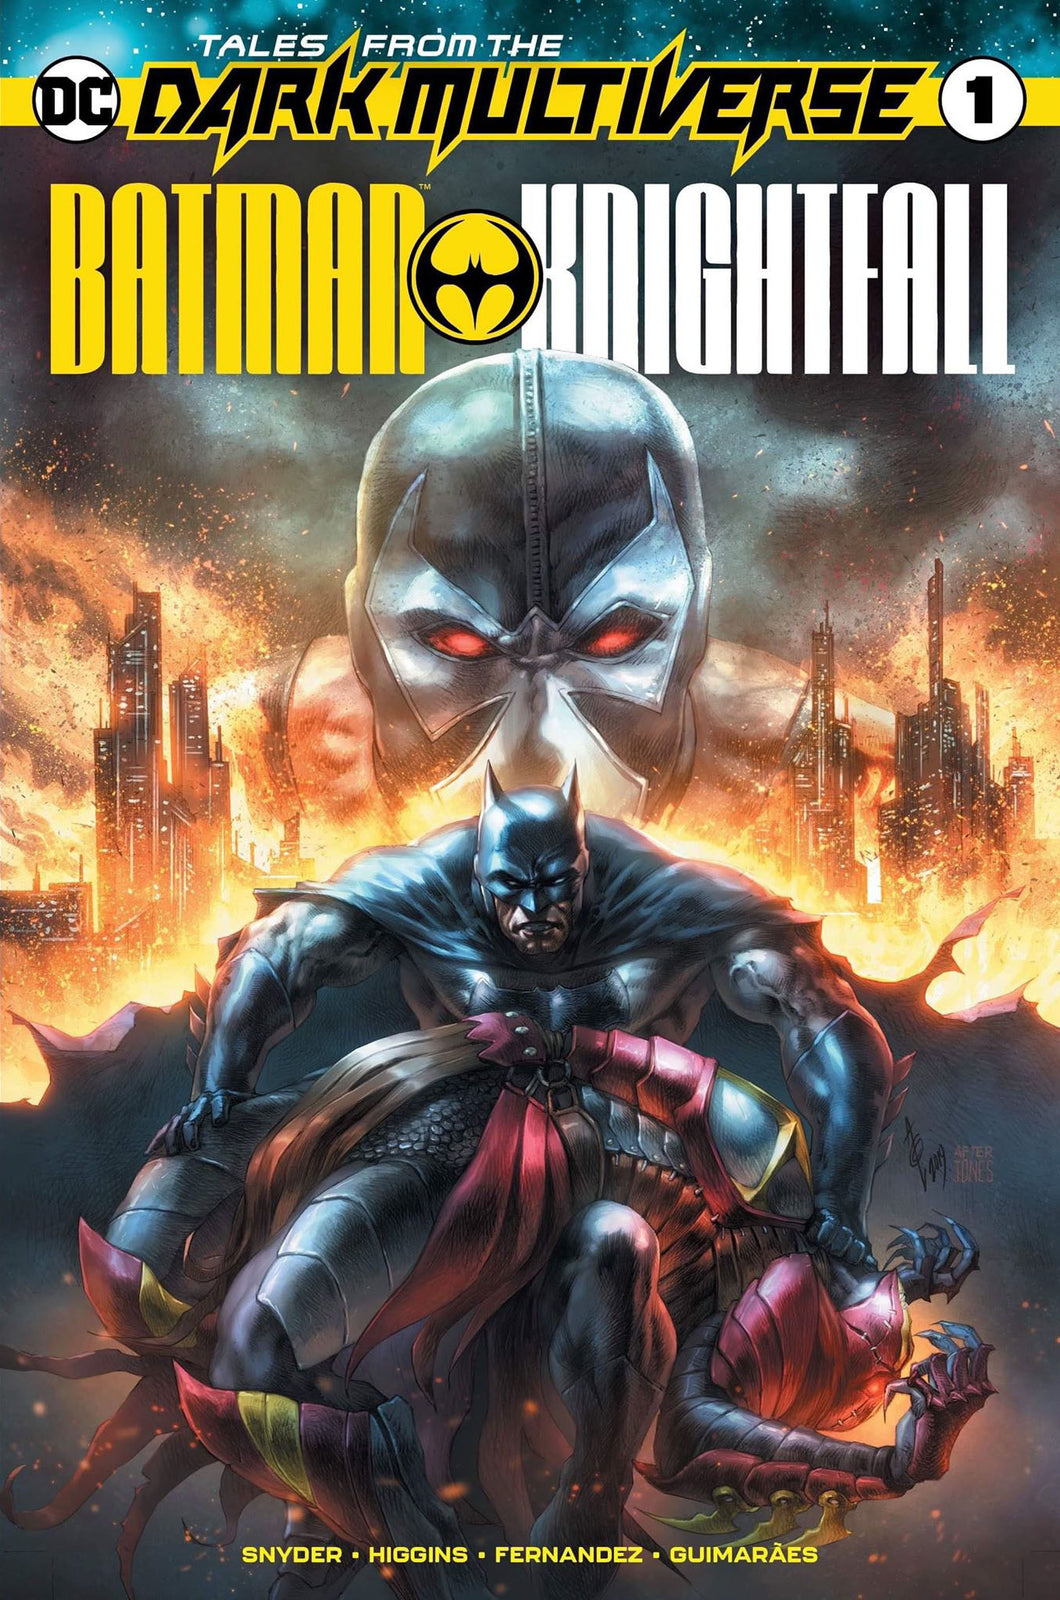 Batman: Knightfall #1 Alan Quah Variant - First Son of Bane!